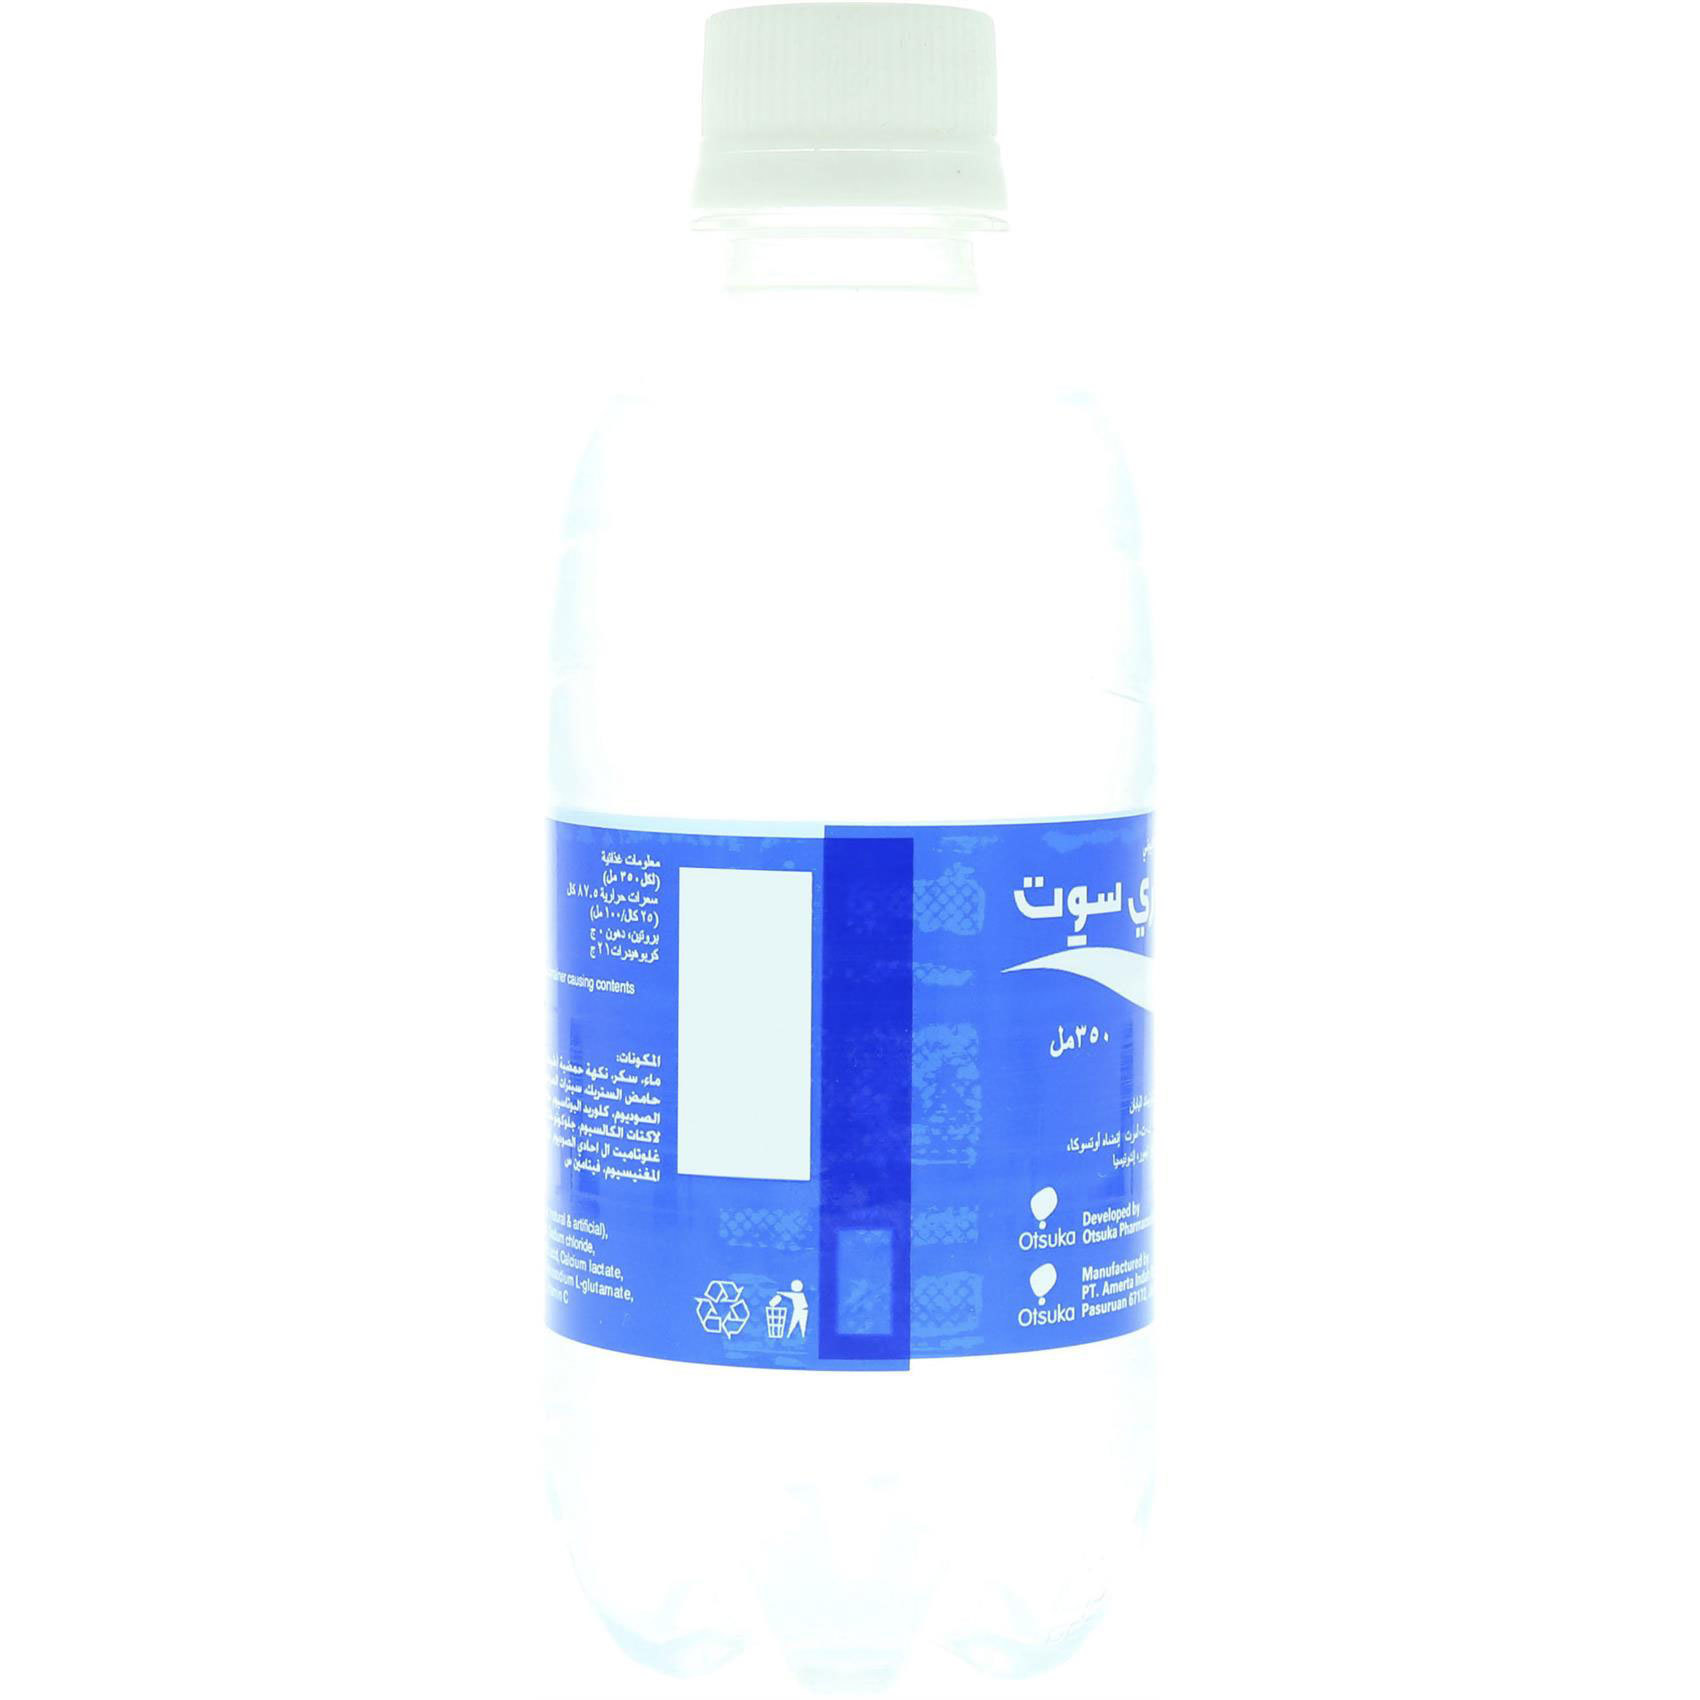 POCARI SWEAT DRINK PET BOTTLE 350ML